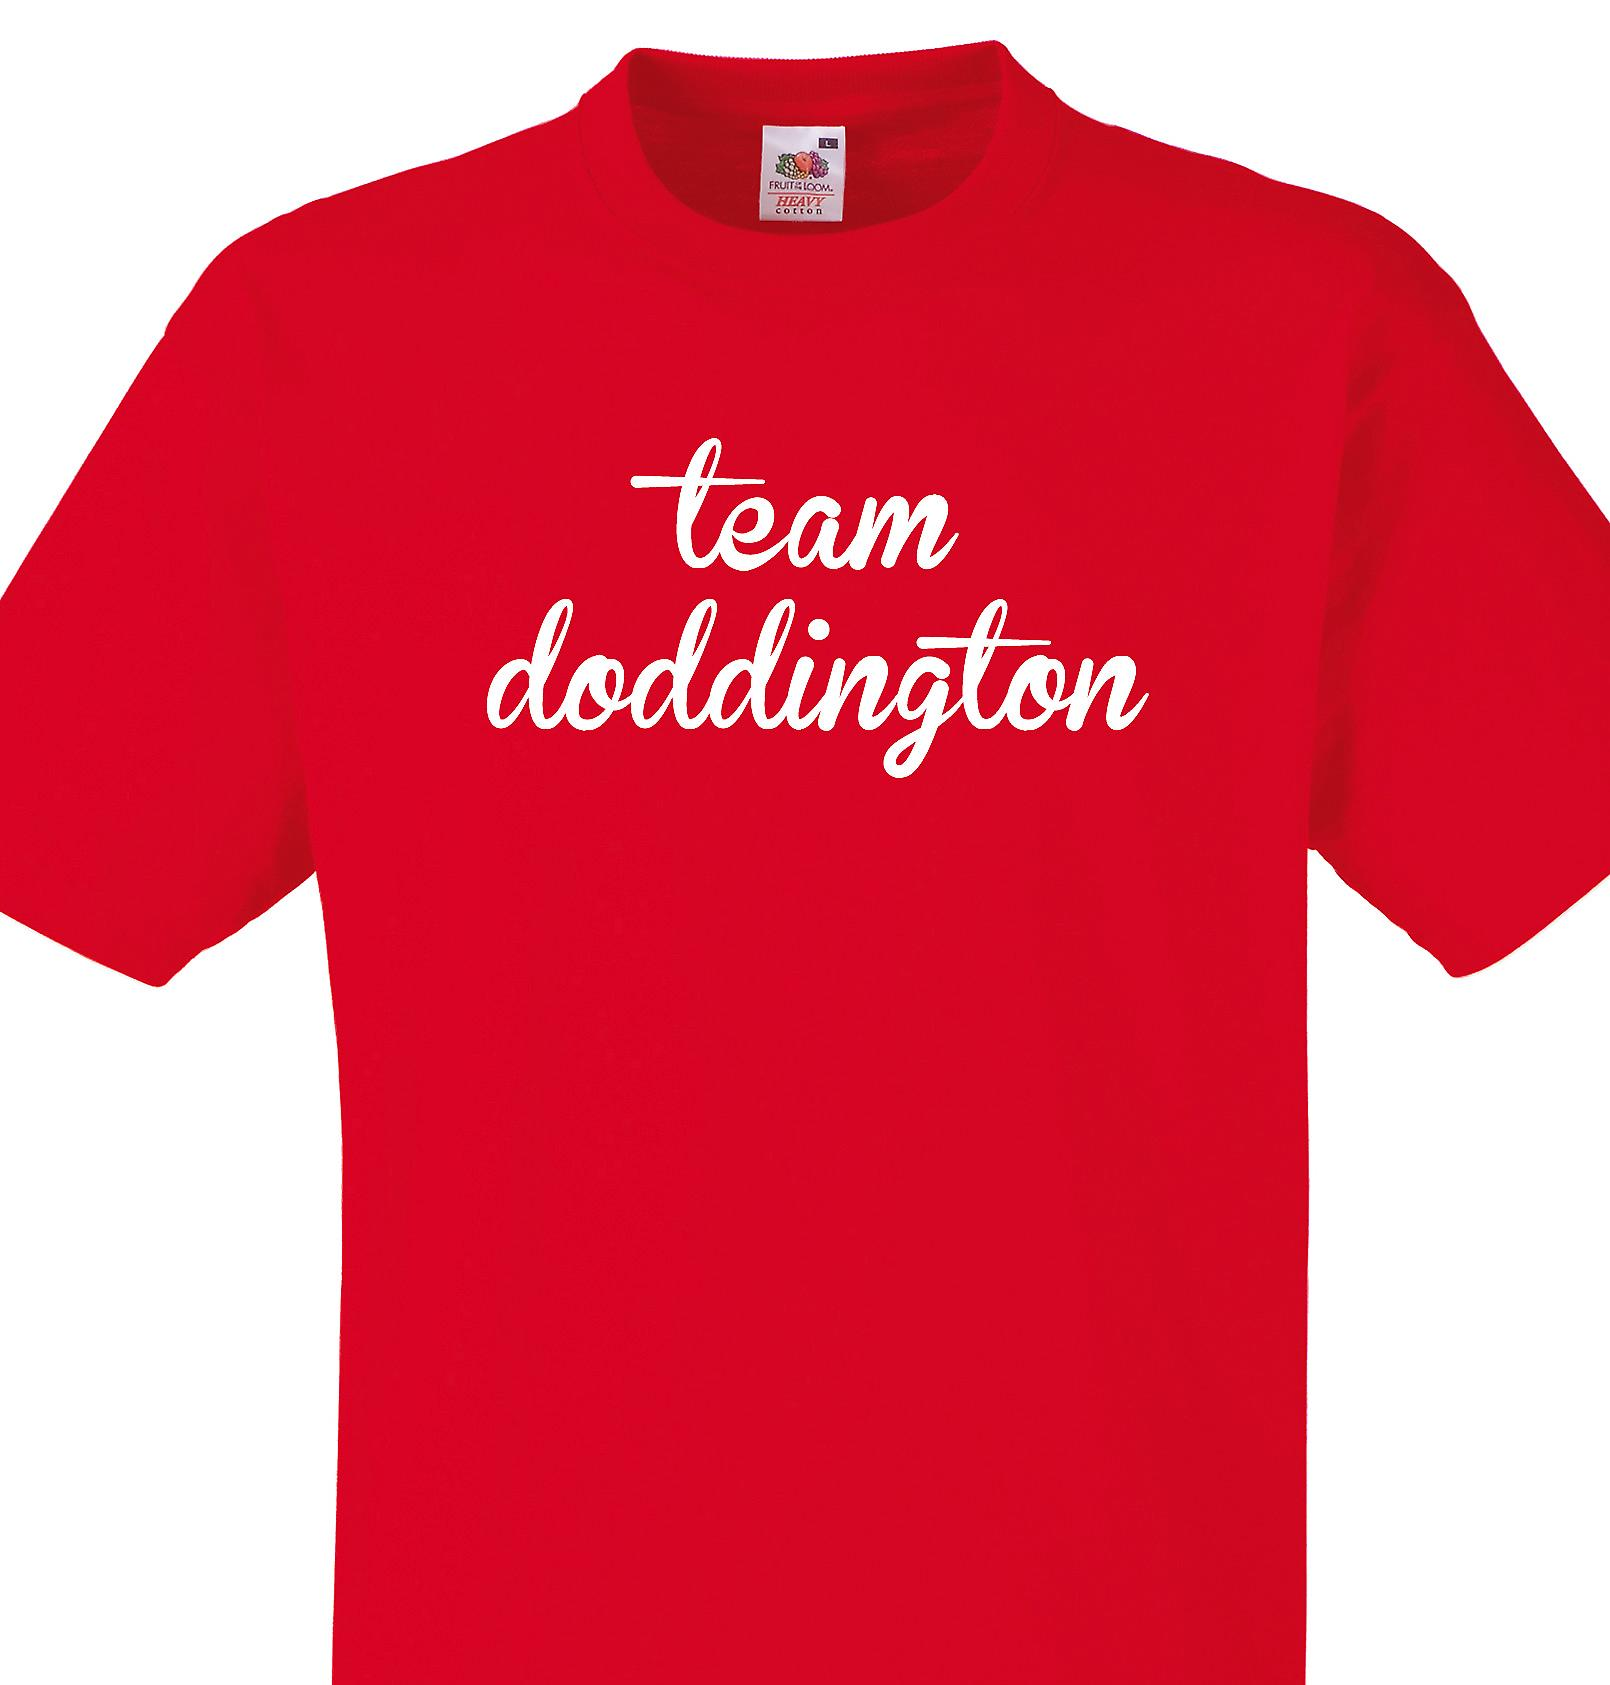 Team Doddington Red T shirt